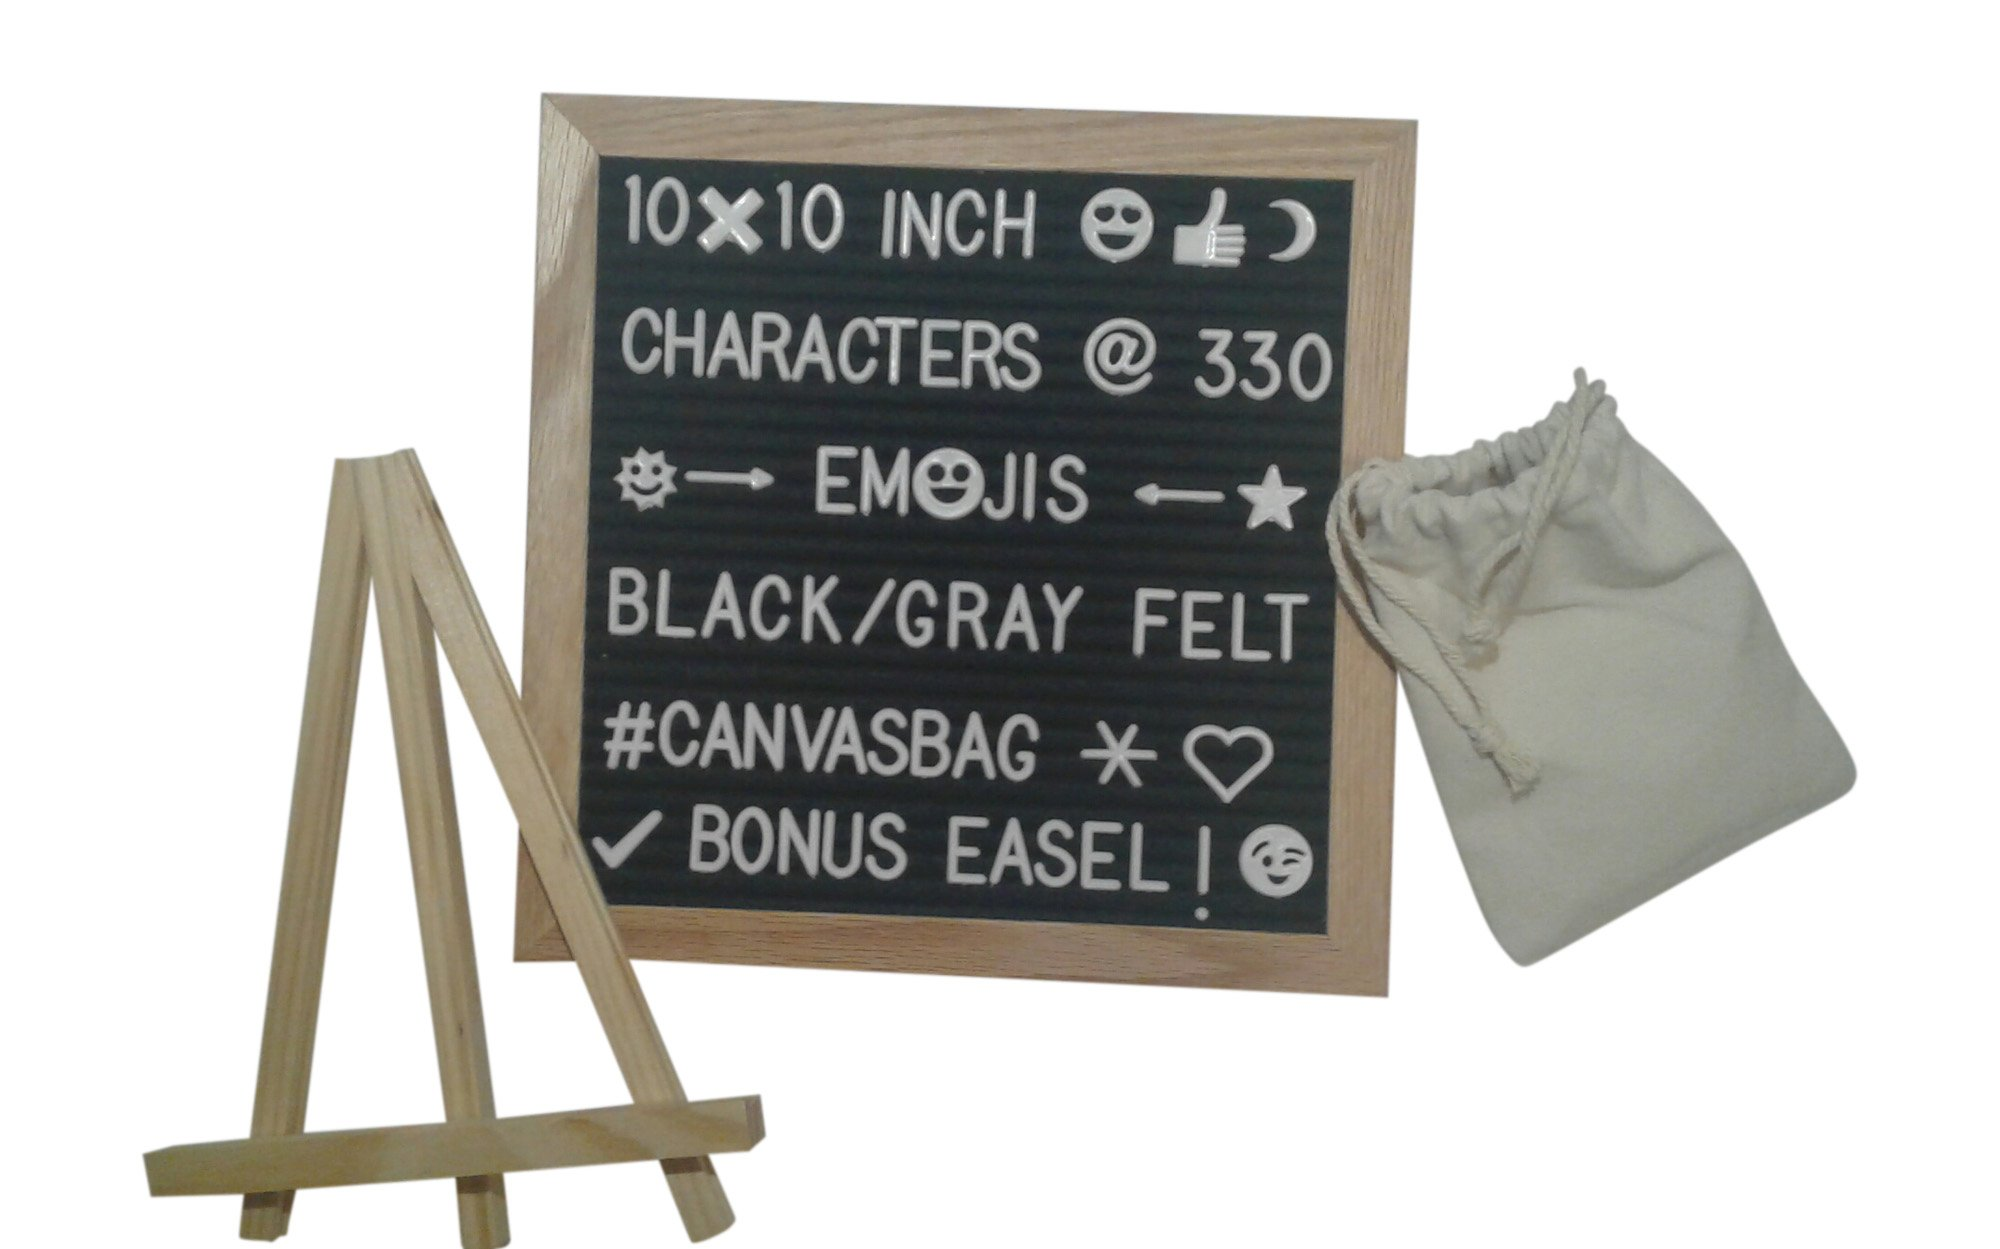 Letter Board With New Emoji ;) Felt Black Or Gray Includes Changeable Letters Numbers Symbols 330 Characters 10x10 Inch Novelty LetterBoard With Attached Wall Mount Canvas Bag And Bonus Free Stand